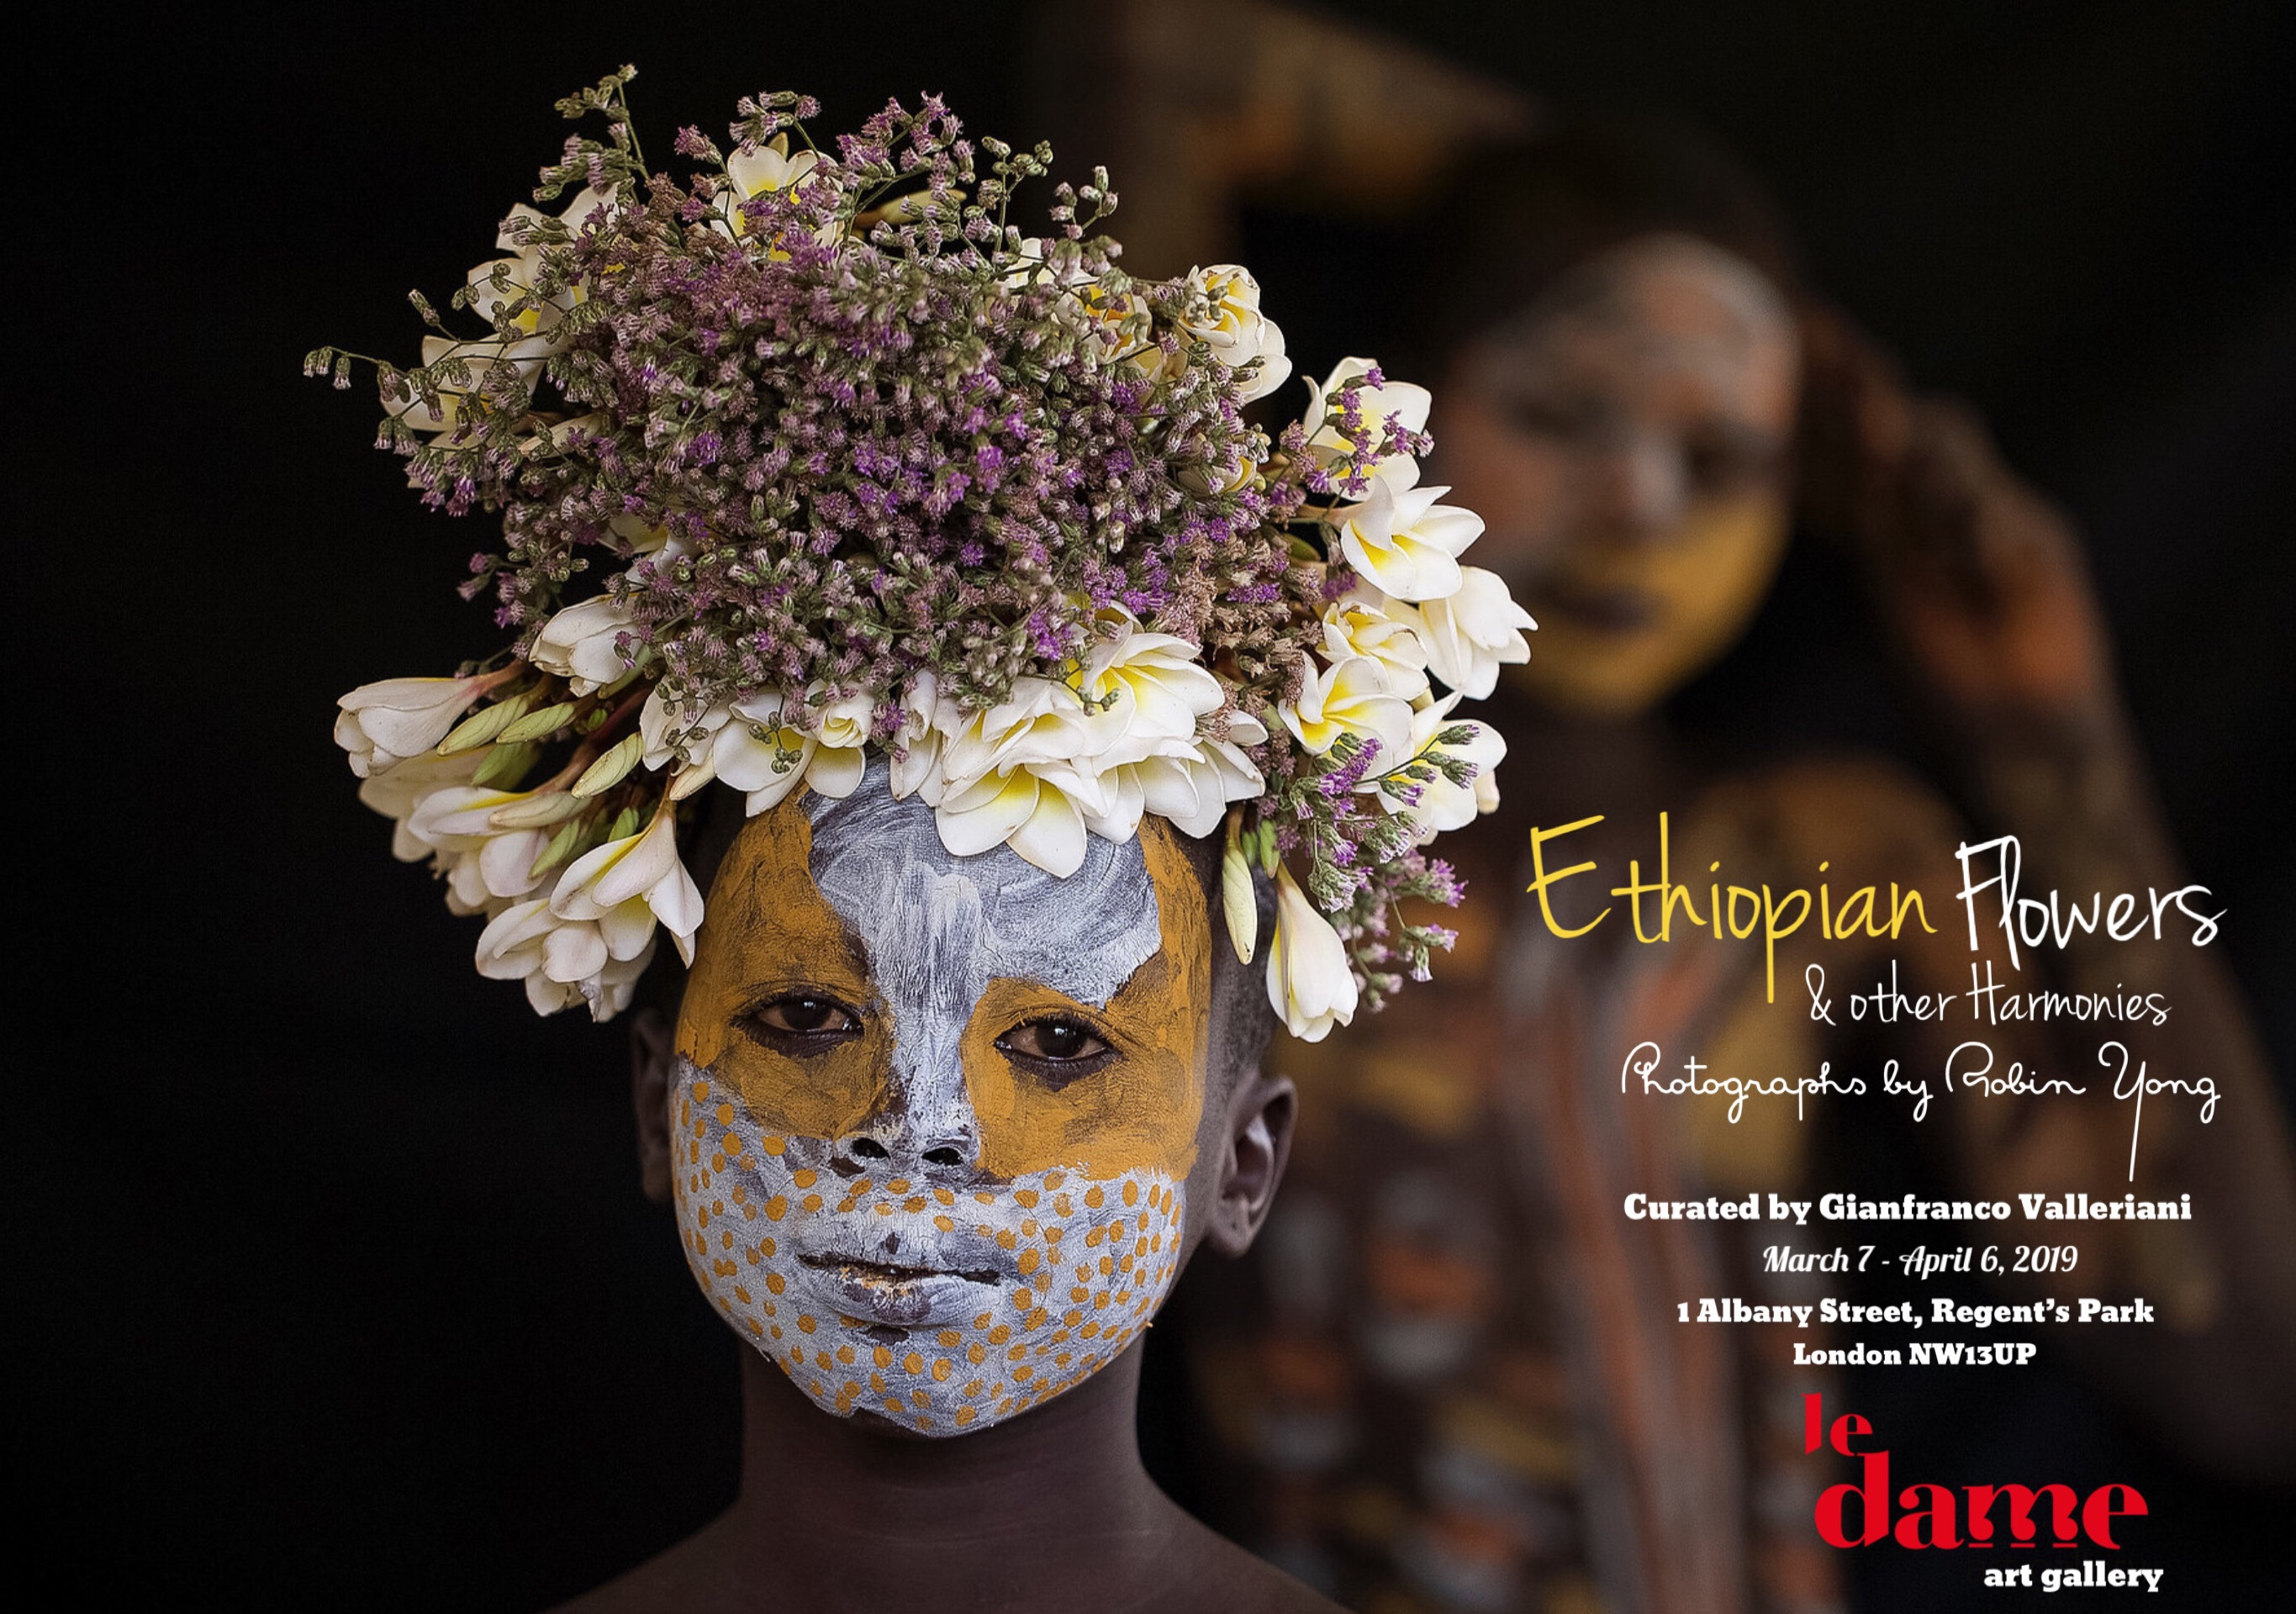 Flowers of Ethiopia by Robin Yong at Le Dame Art Gallery